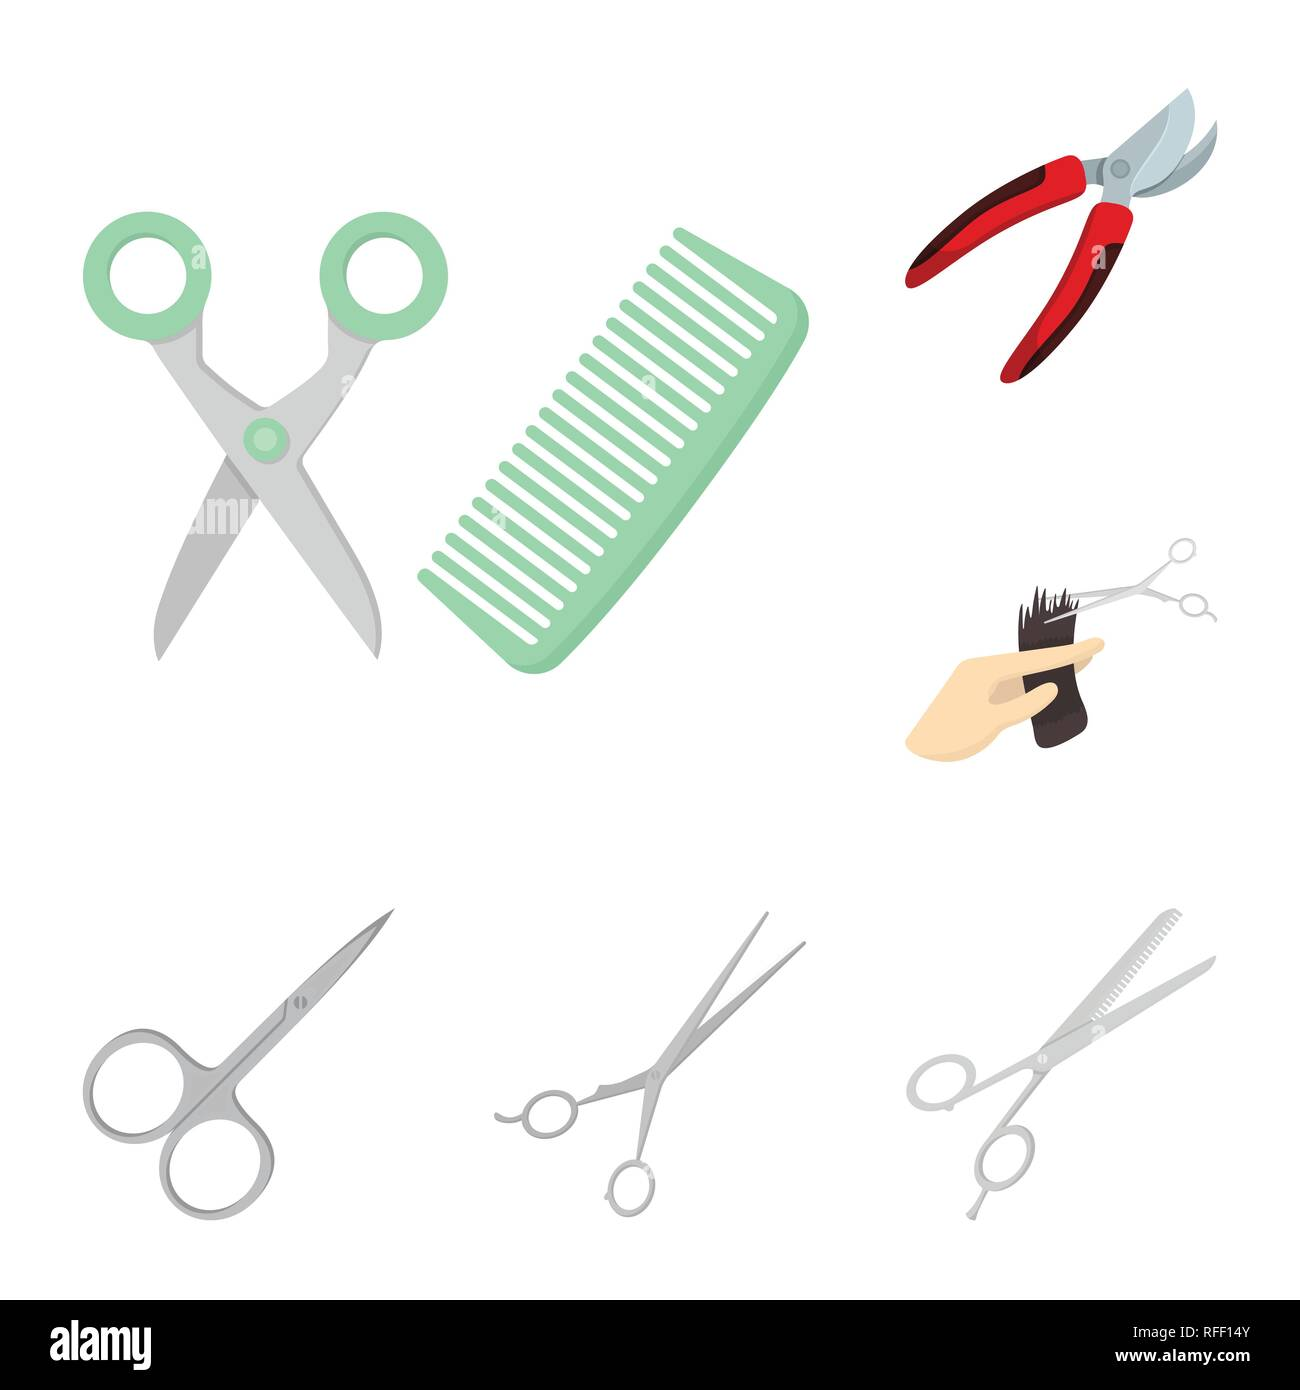 Vector Design Of Scissor And Craft Symbol Collection Of Scissor And